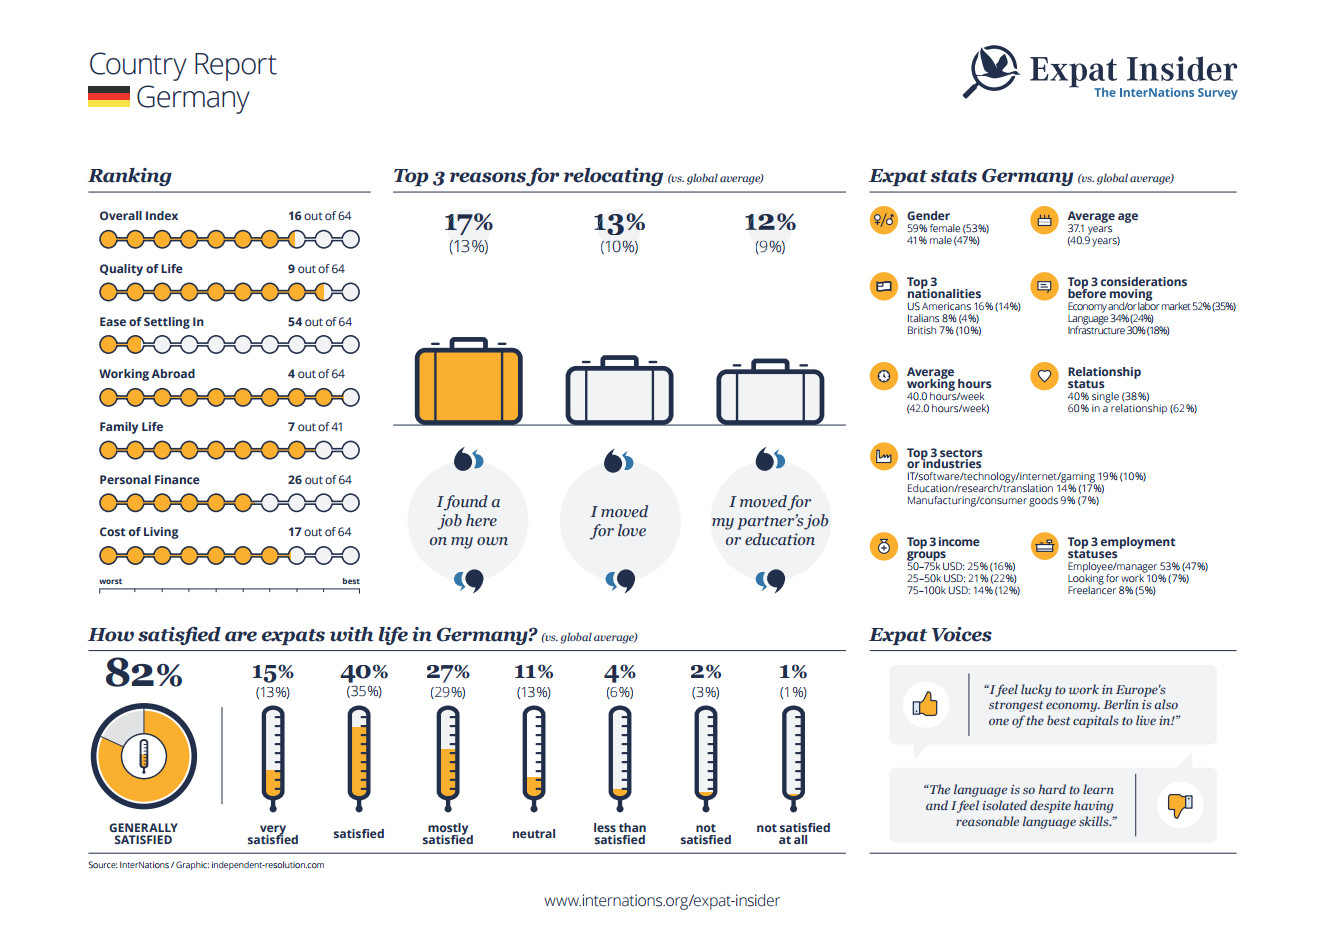 Expat statistics for Germany - infographic